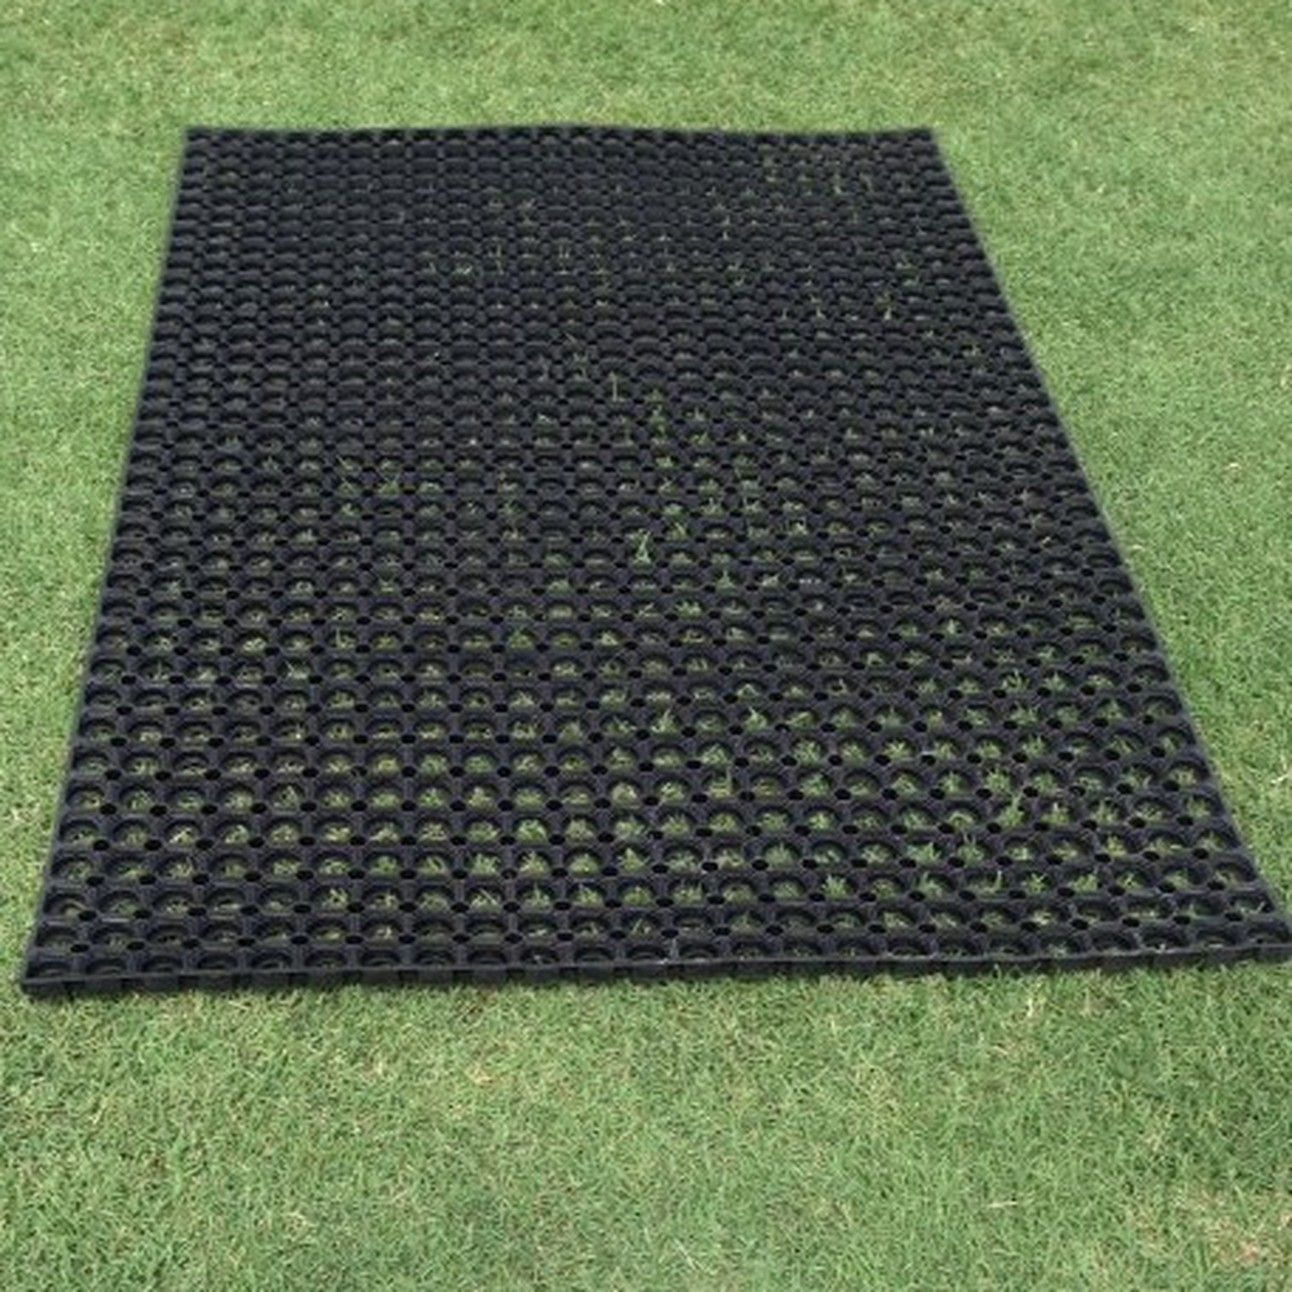 30 Recycled Grassmats also known as grass